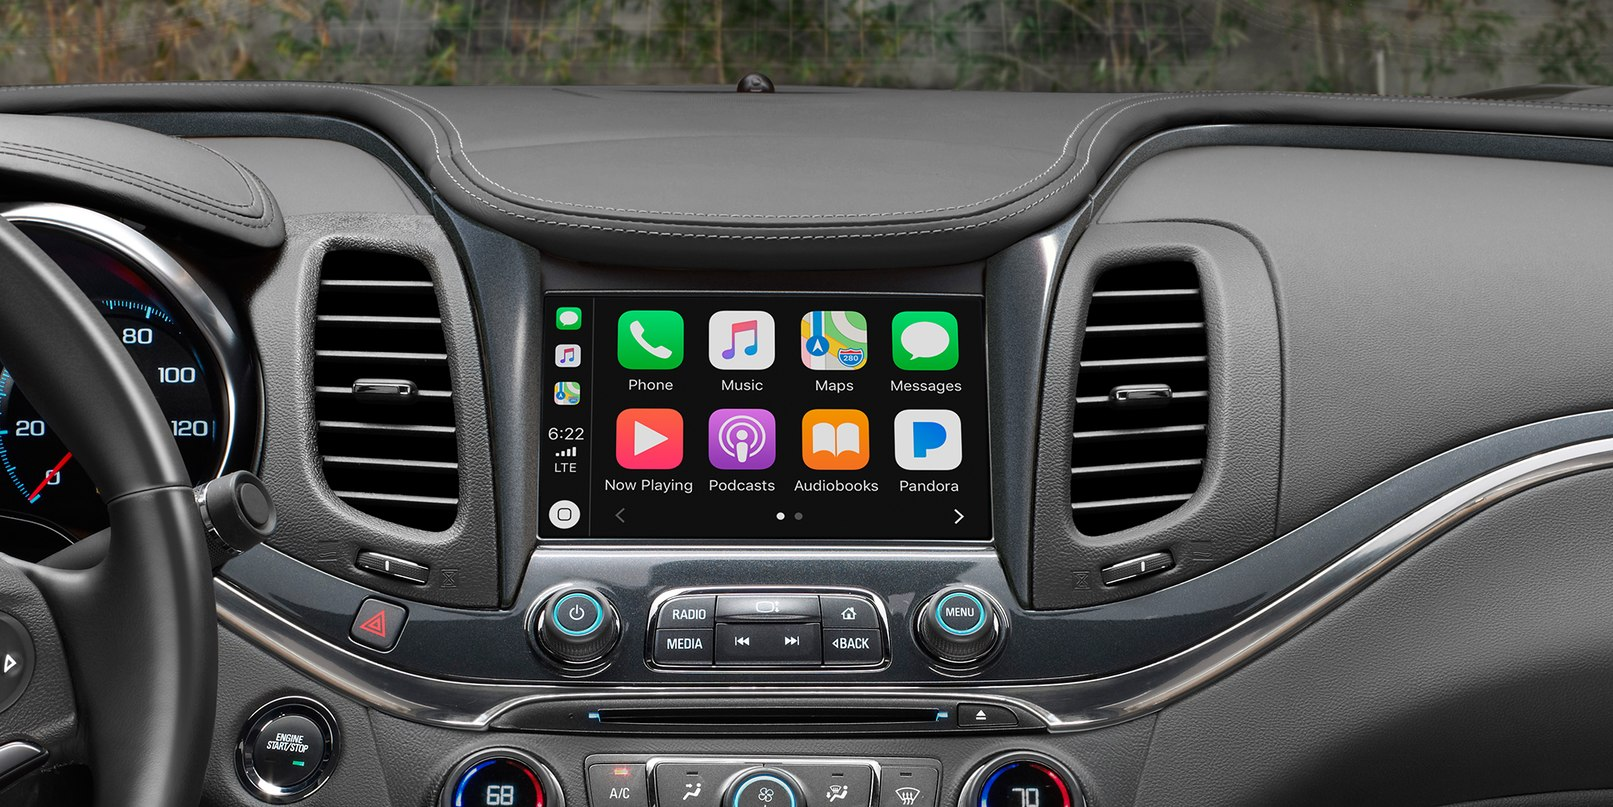 Technology in the 2019 Impala